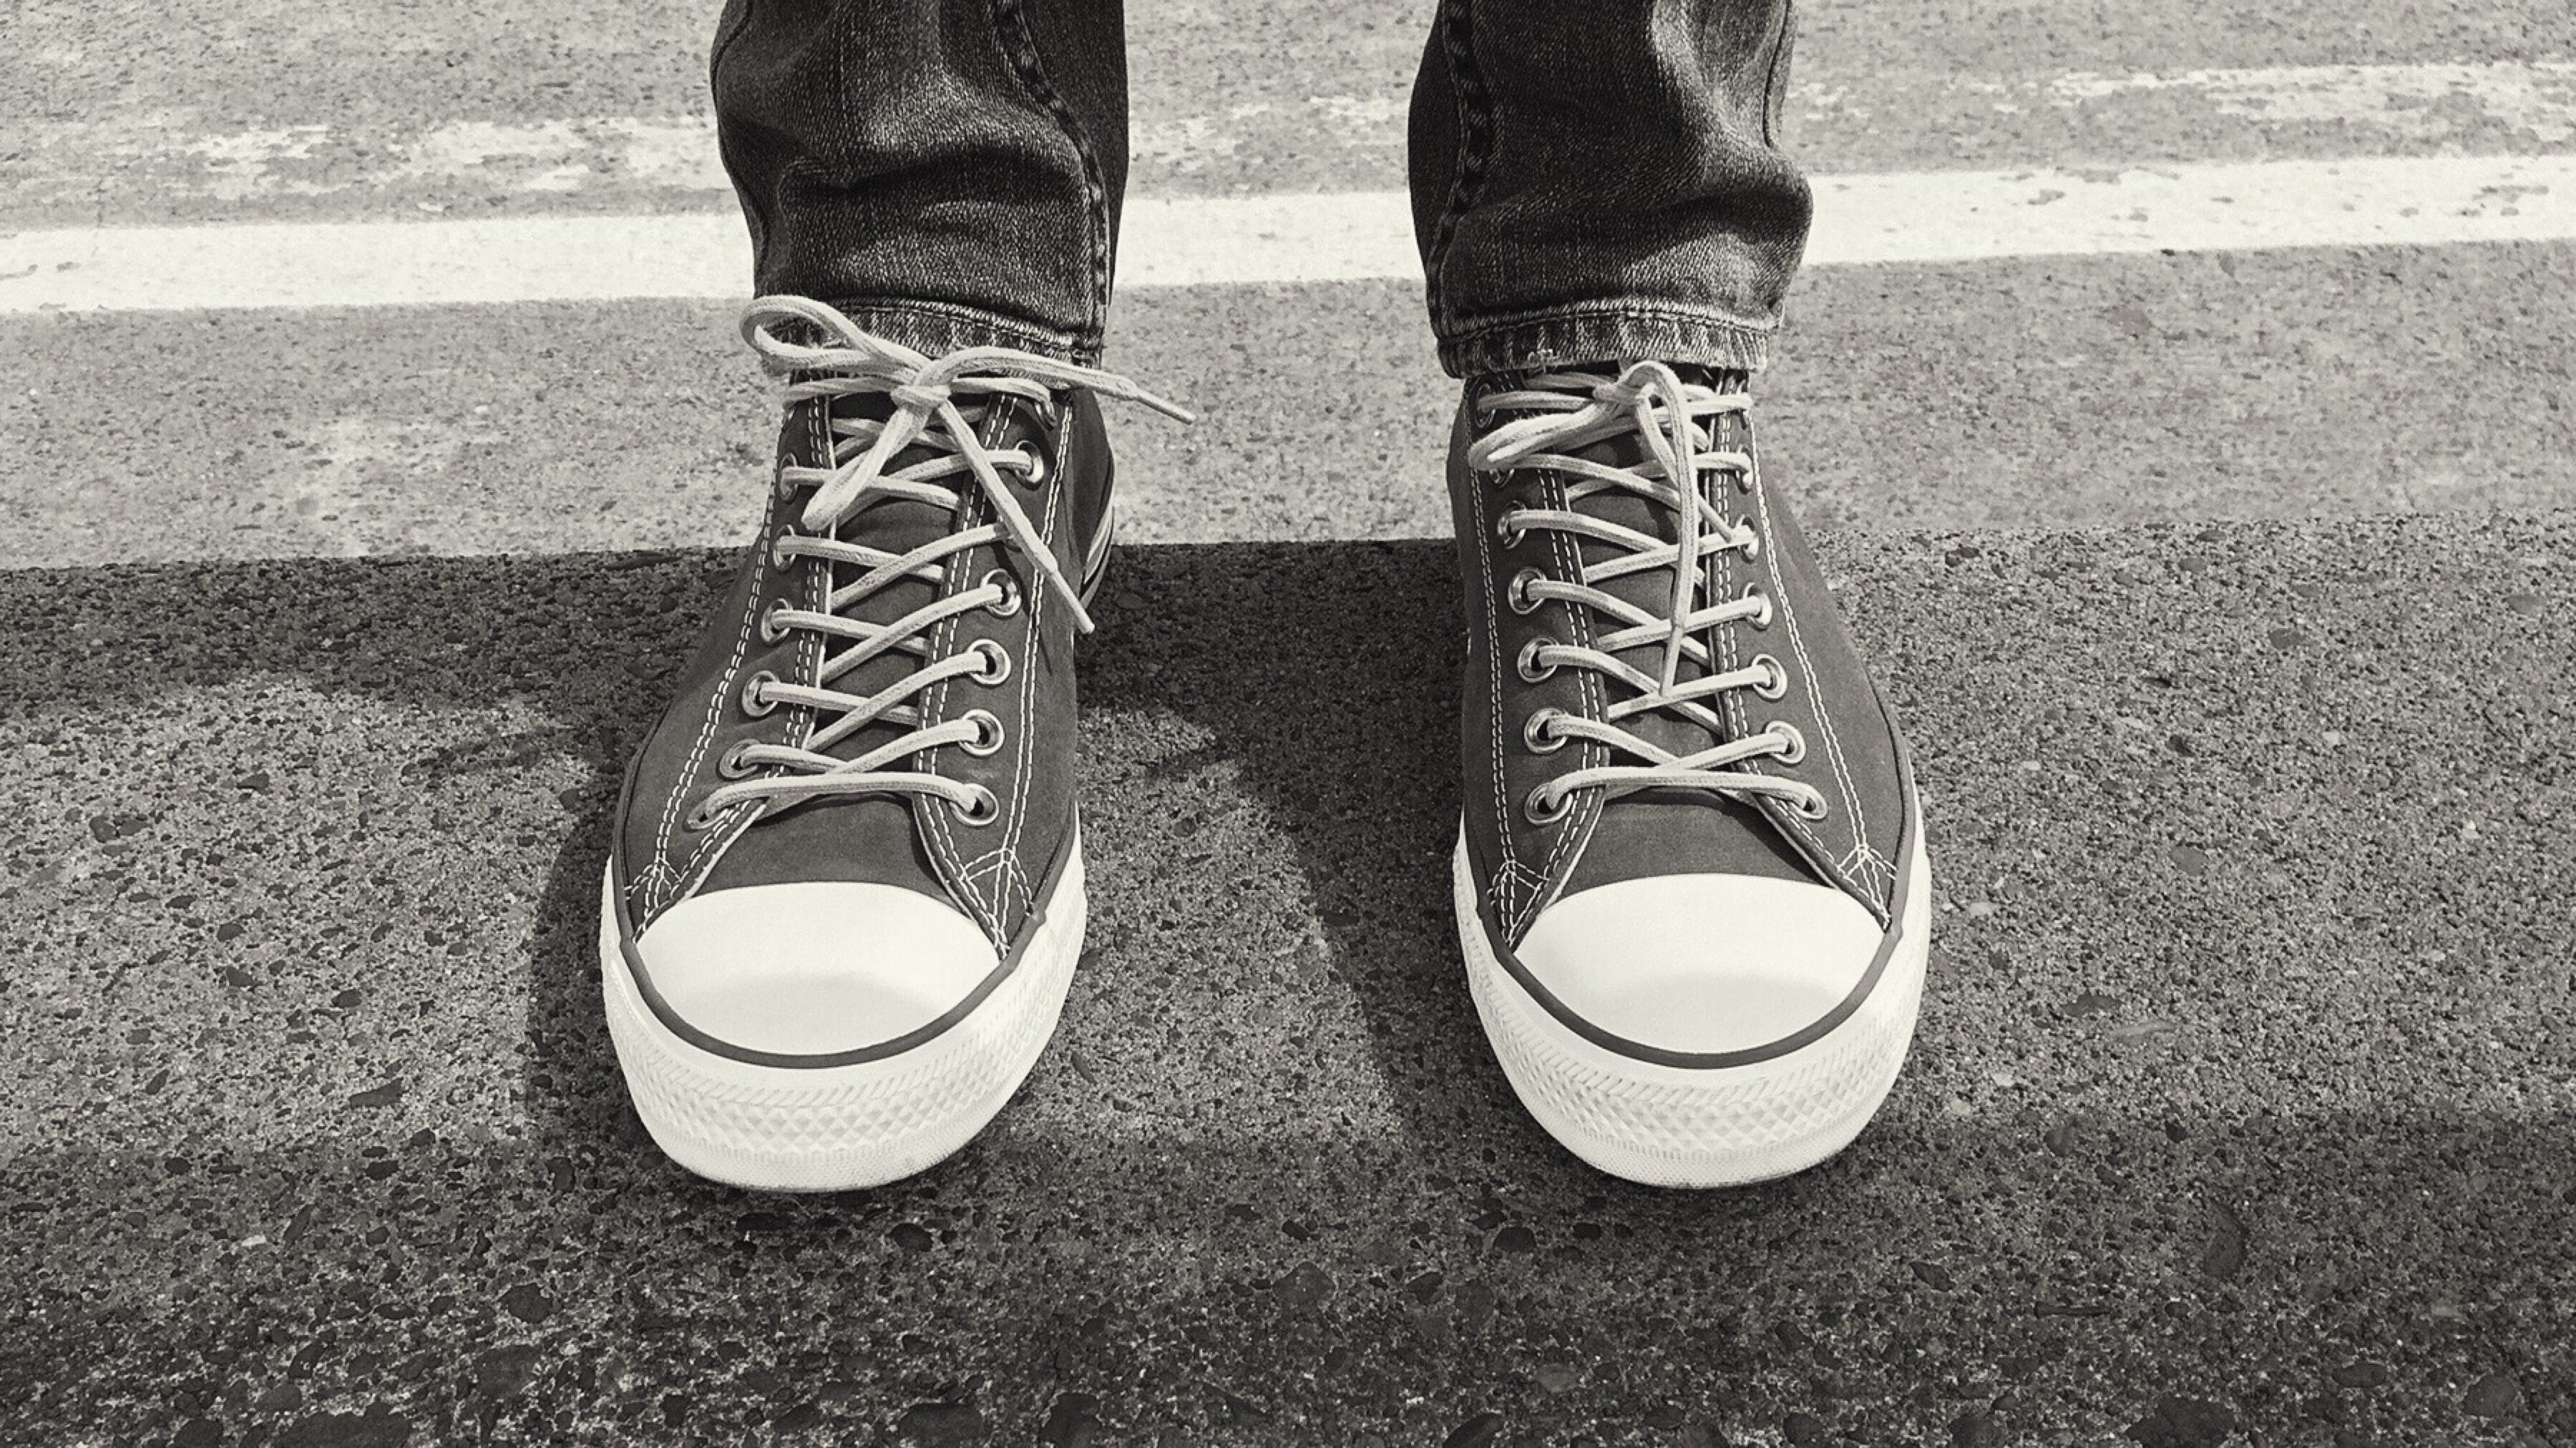 Free stock photo of black-and-white, feet, shoes, sneakers